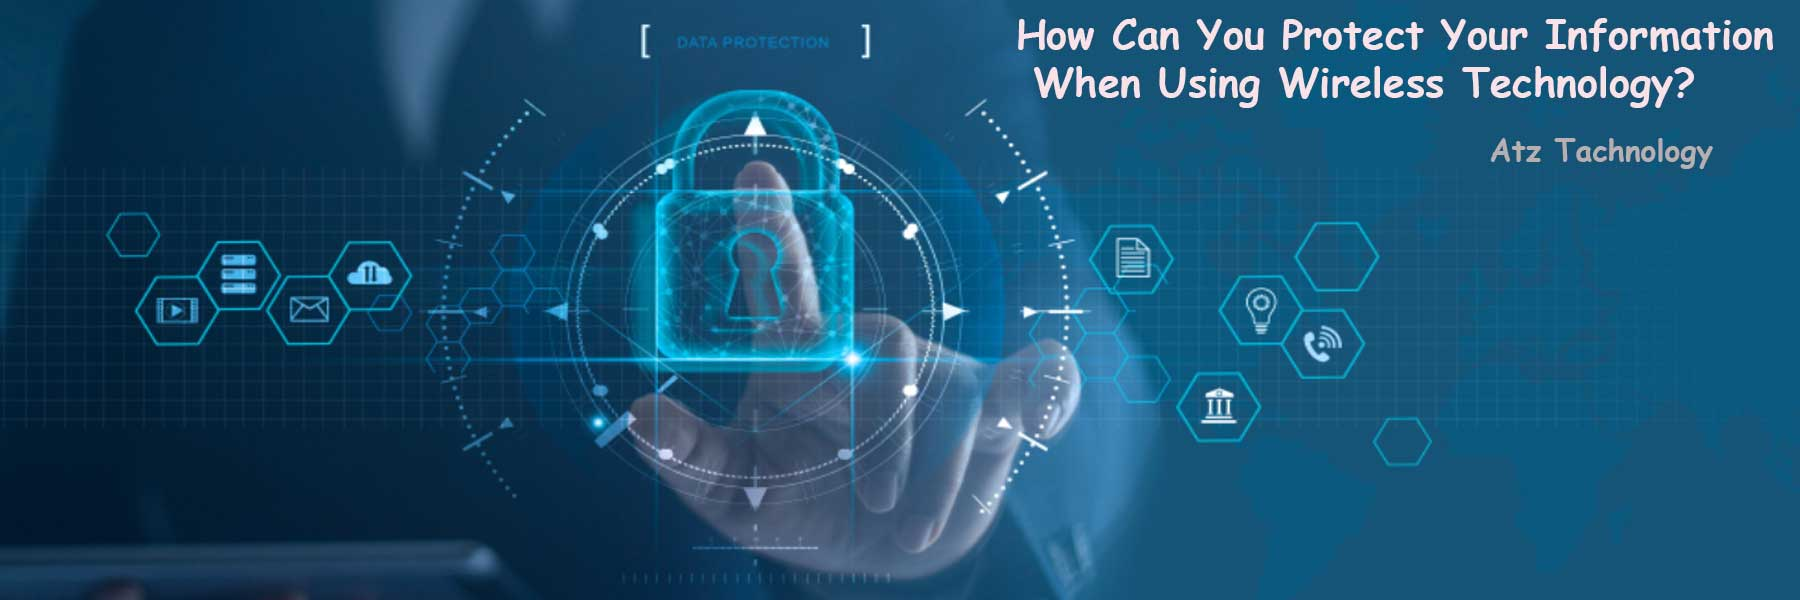 How Can You Protect Your Information When Using Wireless Technology